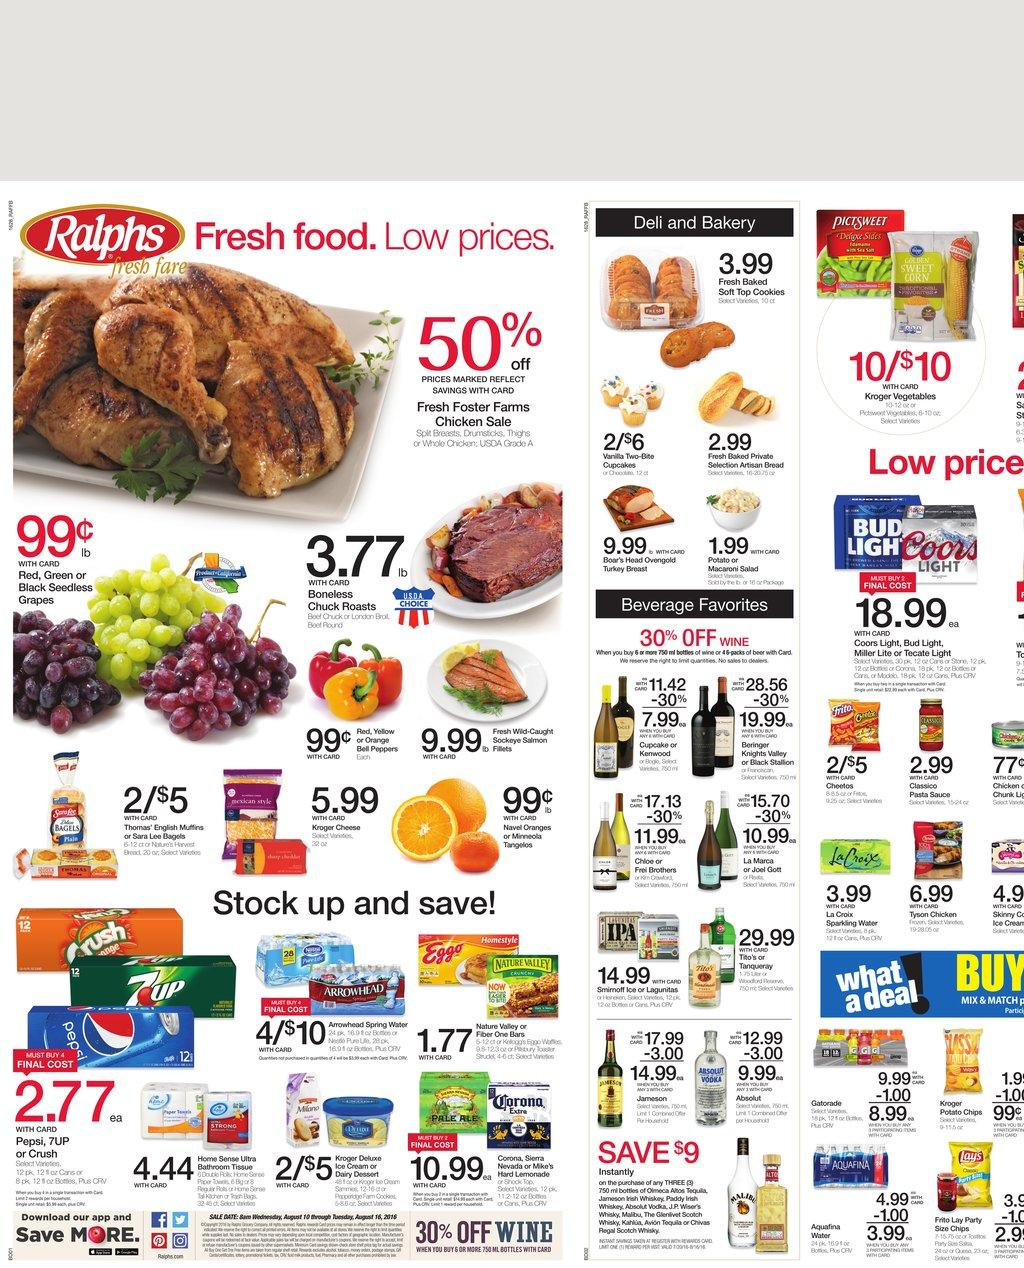 Explore latest Shoprite Weekly Circular Flyer December 2 – 8, Customers can search Shoprite ads or Shoprite circular here to keep track of the discounts, promotions, coupons and deals offered by the store. Shoprite offer everyday groceries and household products, budget-beating recipes, convenient services and much more.